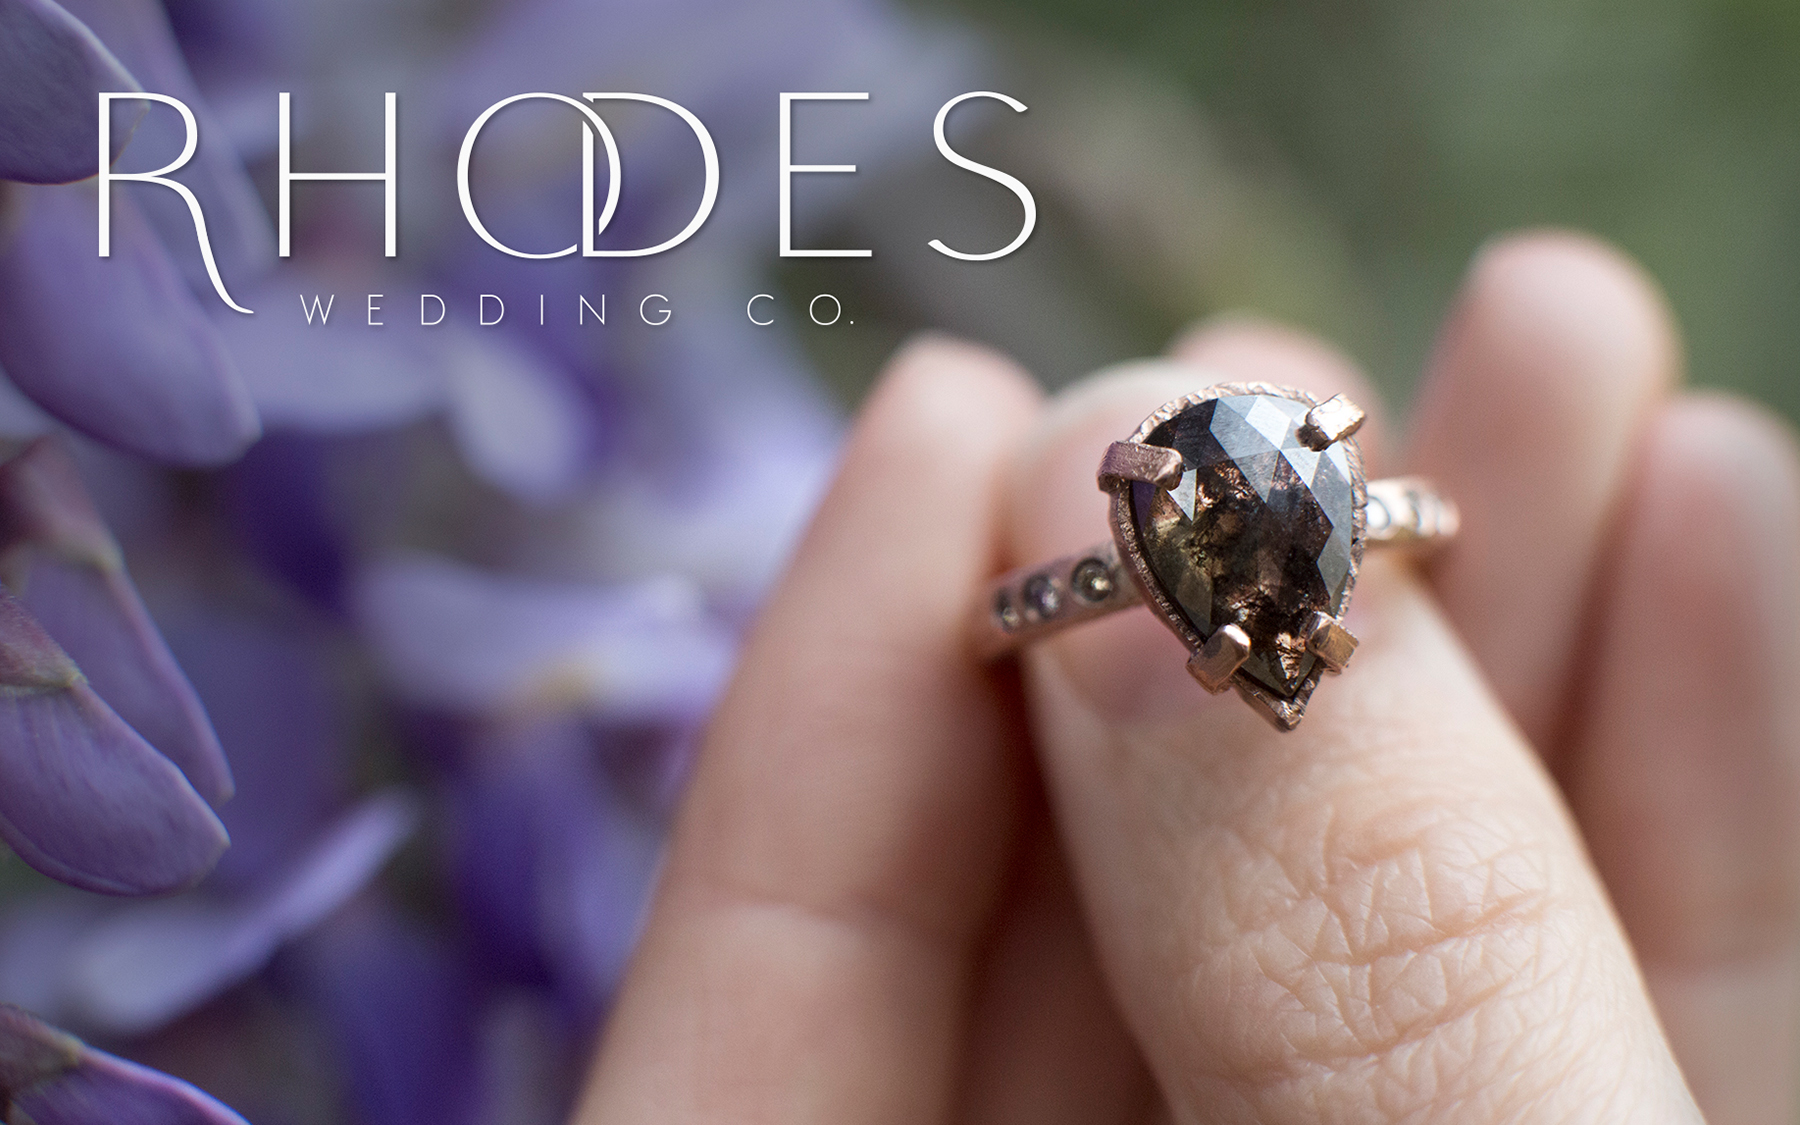 RHODES WEDDING CO.  Their hand carved wedding bands + engagement rings are much more than mass-produced pieces of metal. The rings are about you—an heirloom to be cherished + passed down through generations.    More Information      Leave a Review